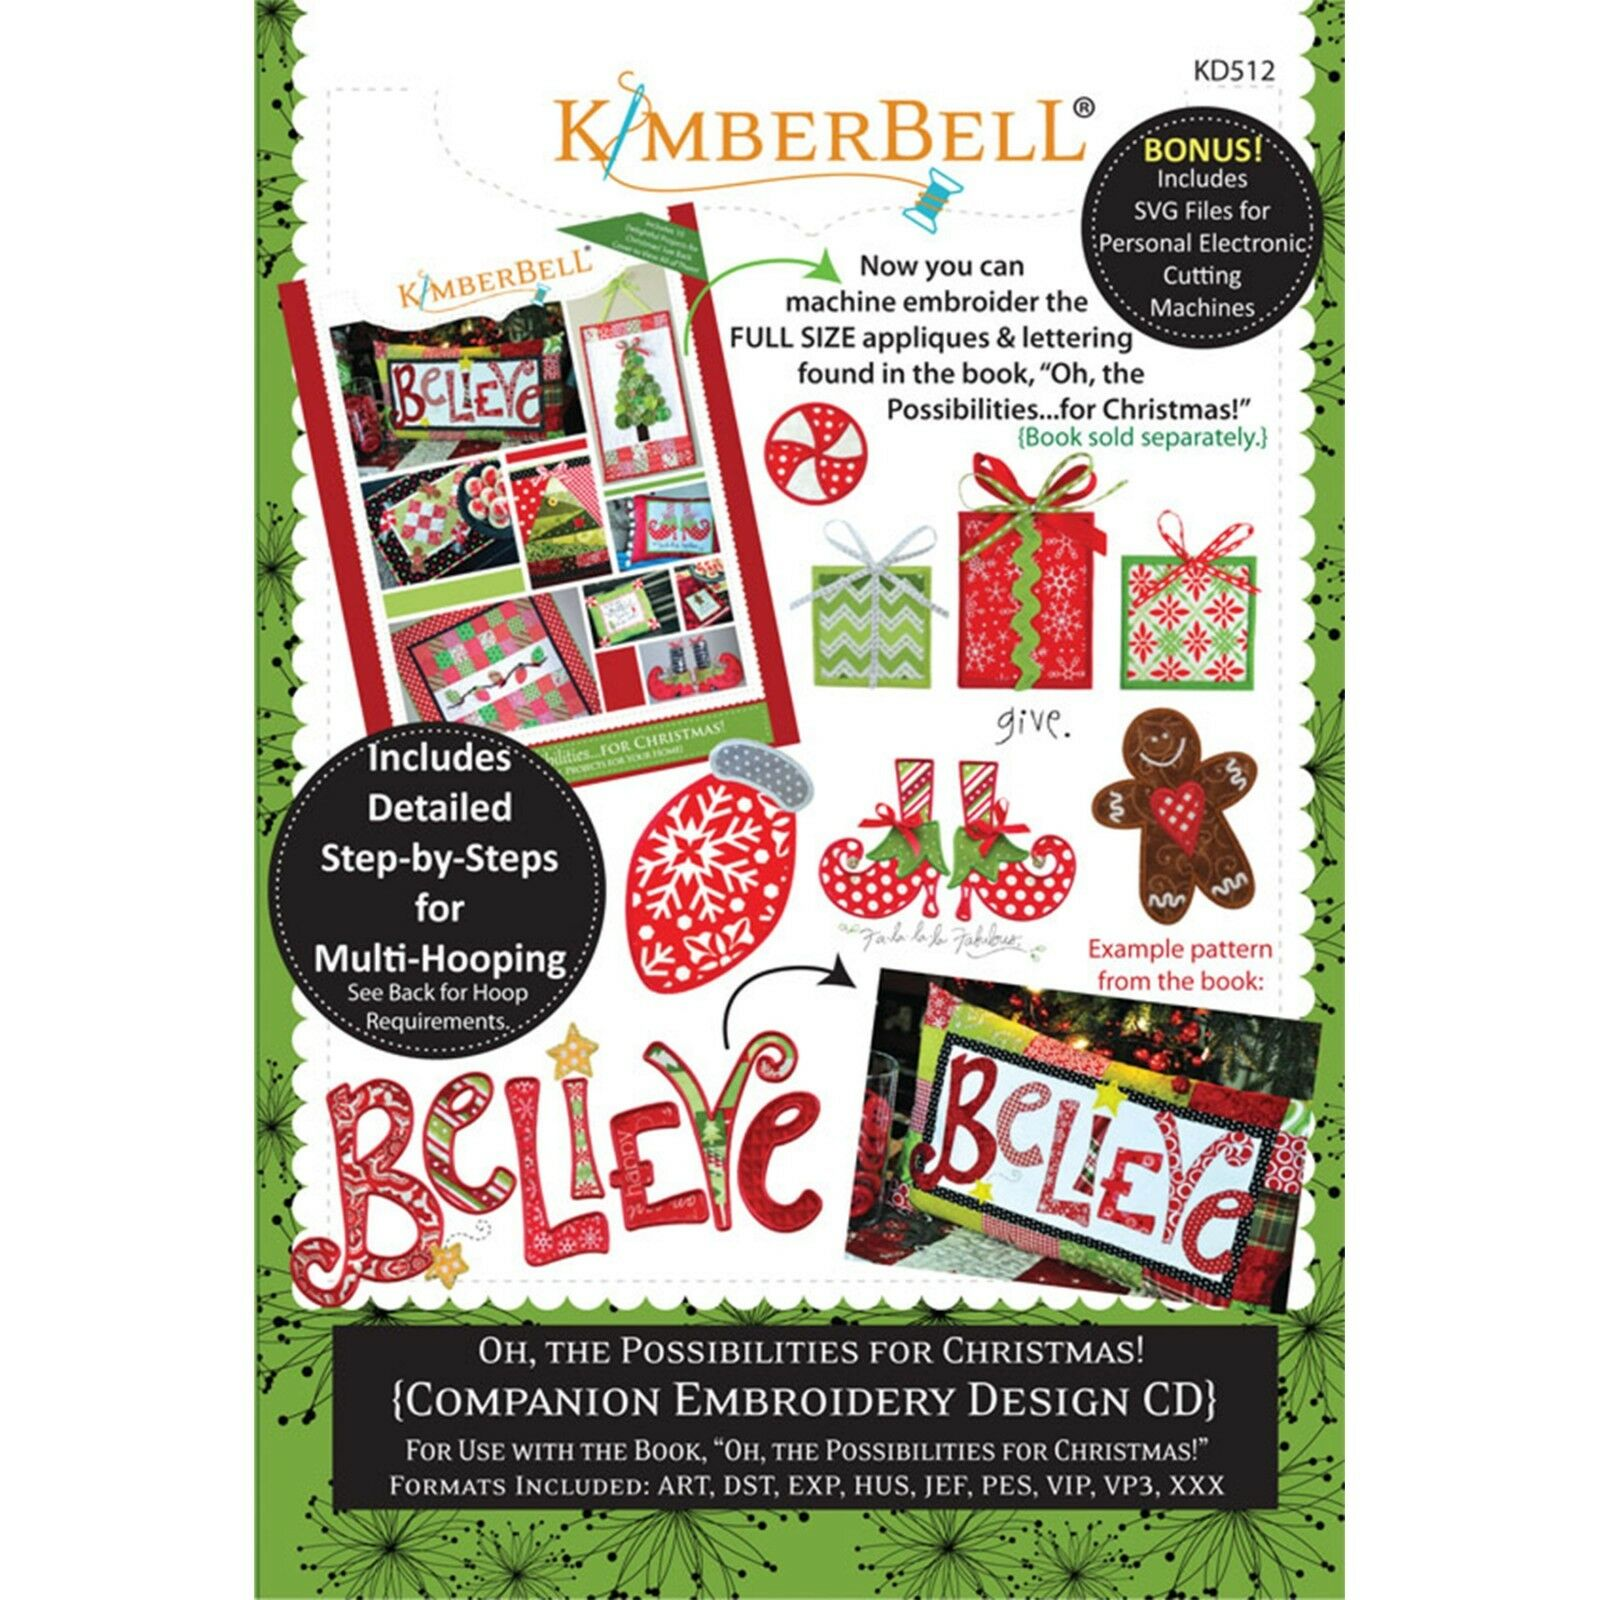 KimberbellOH THE POSSIBILITIES….FOR CHRISTMAS! MACHINE EMBROIDERY CD